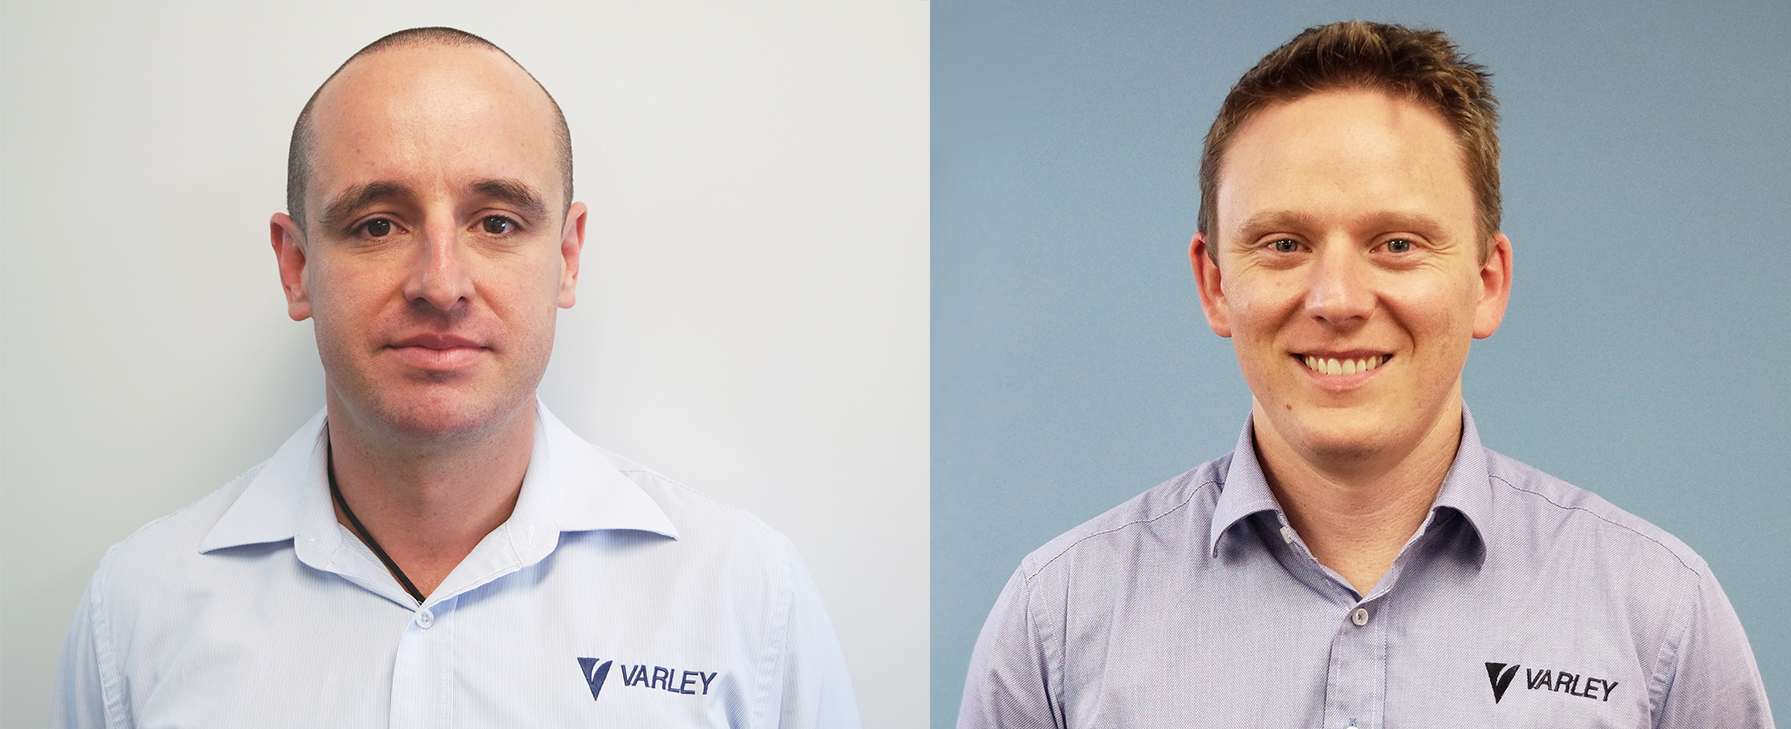 Varley Group's FLP participants Ian Craig (left) and Nick Percy (right).